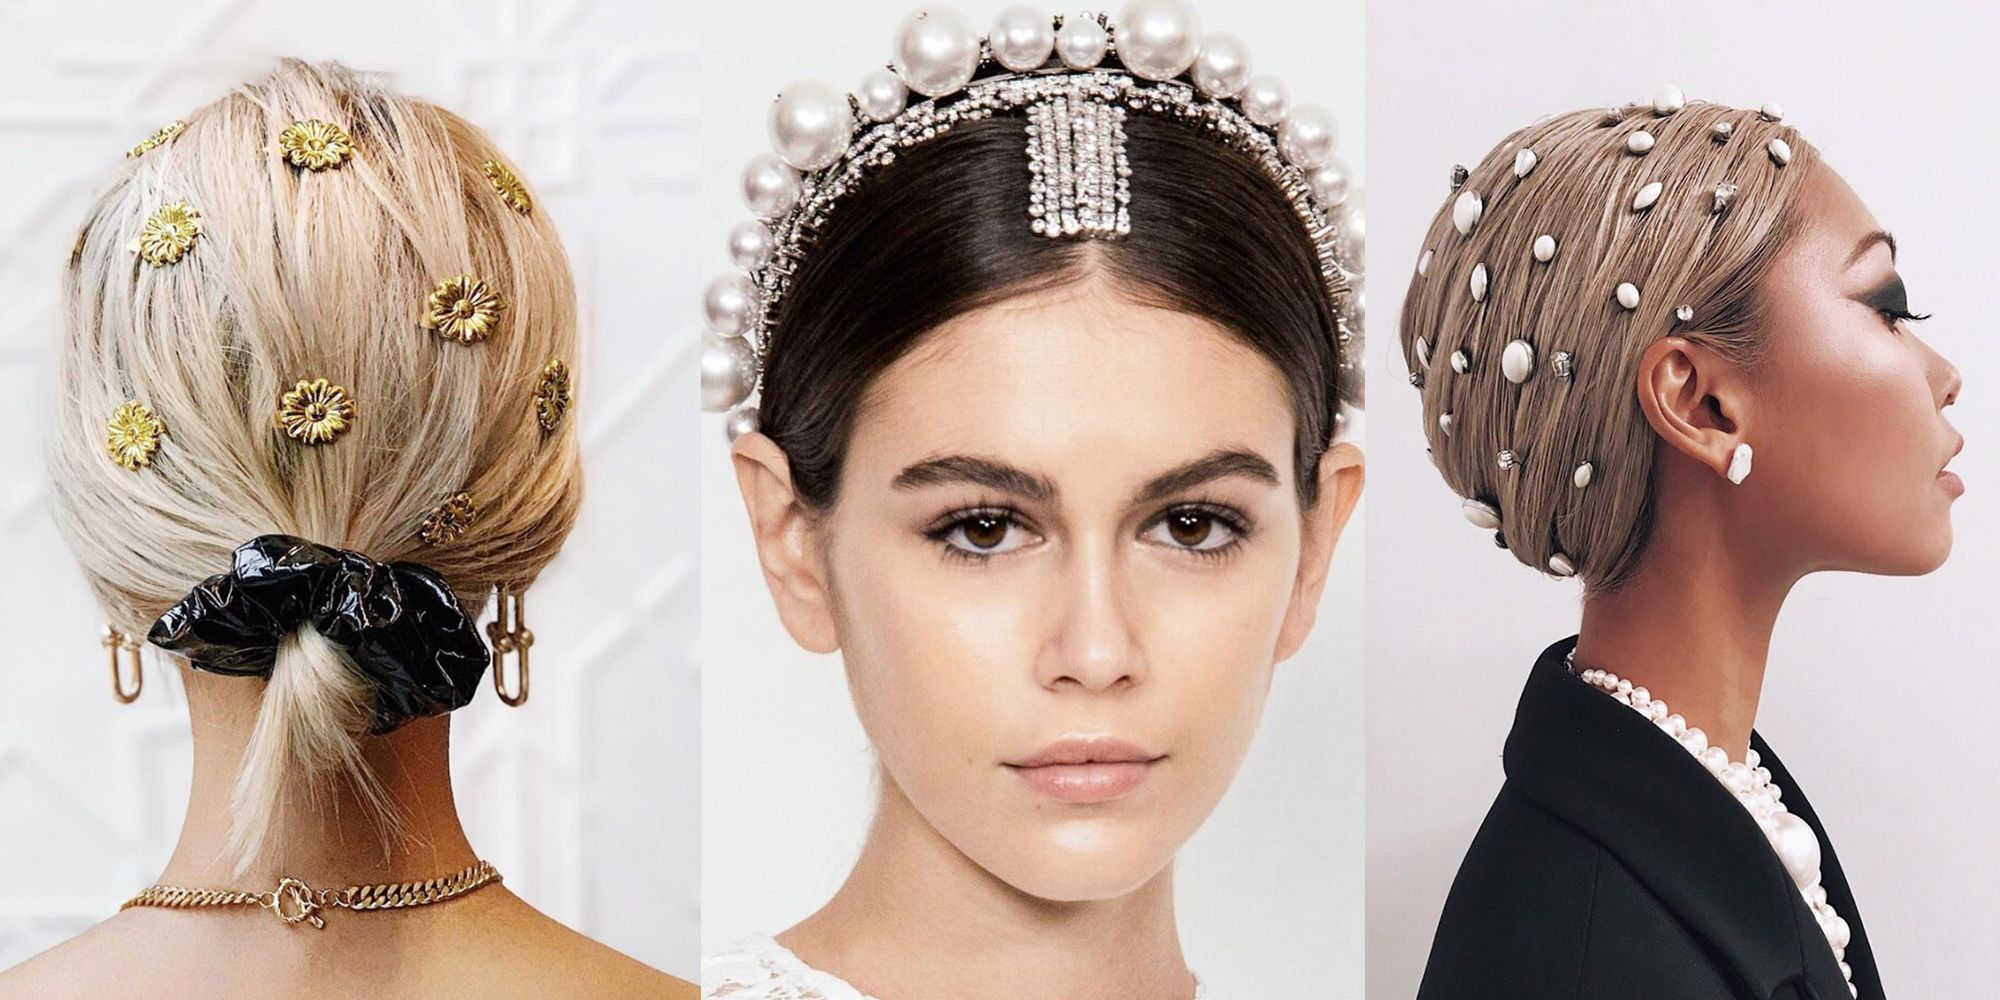 10 Short Wedding Hairstyles - Bridal Updos, Braids, and Hairstyles